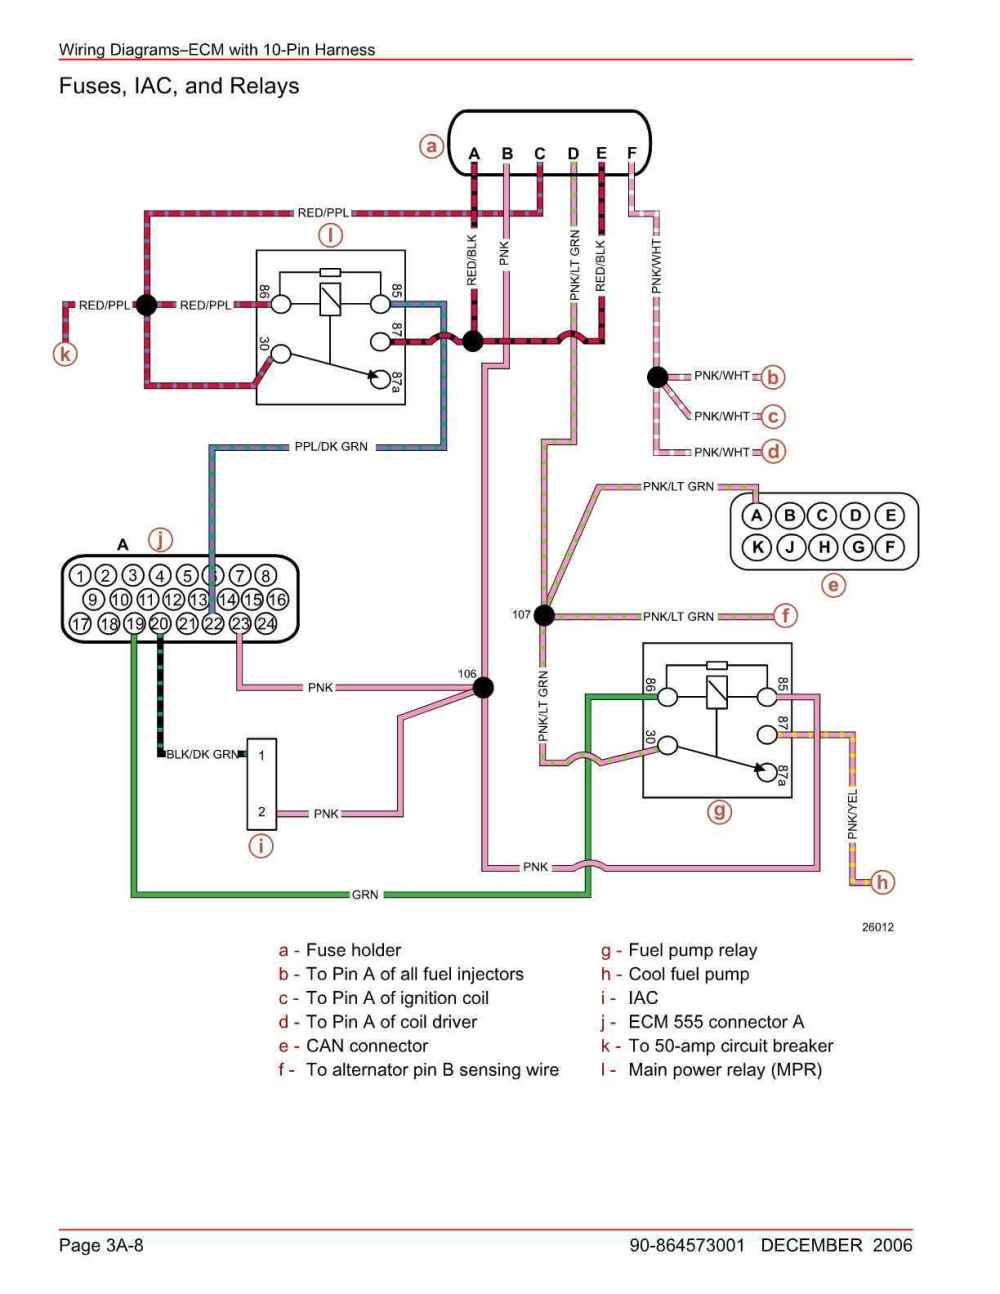 medium resolution of here are the diagrams showing both note the pink wire coming from connector a pin 23 that is the 12v feed to the ecm